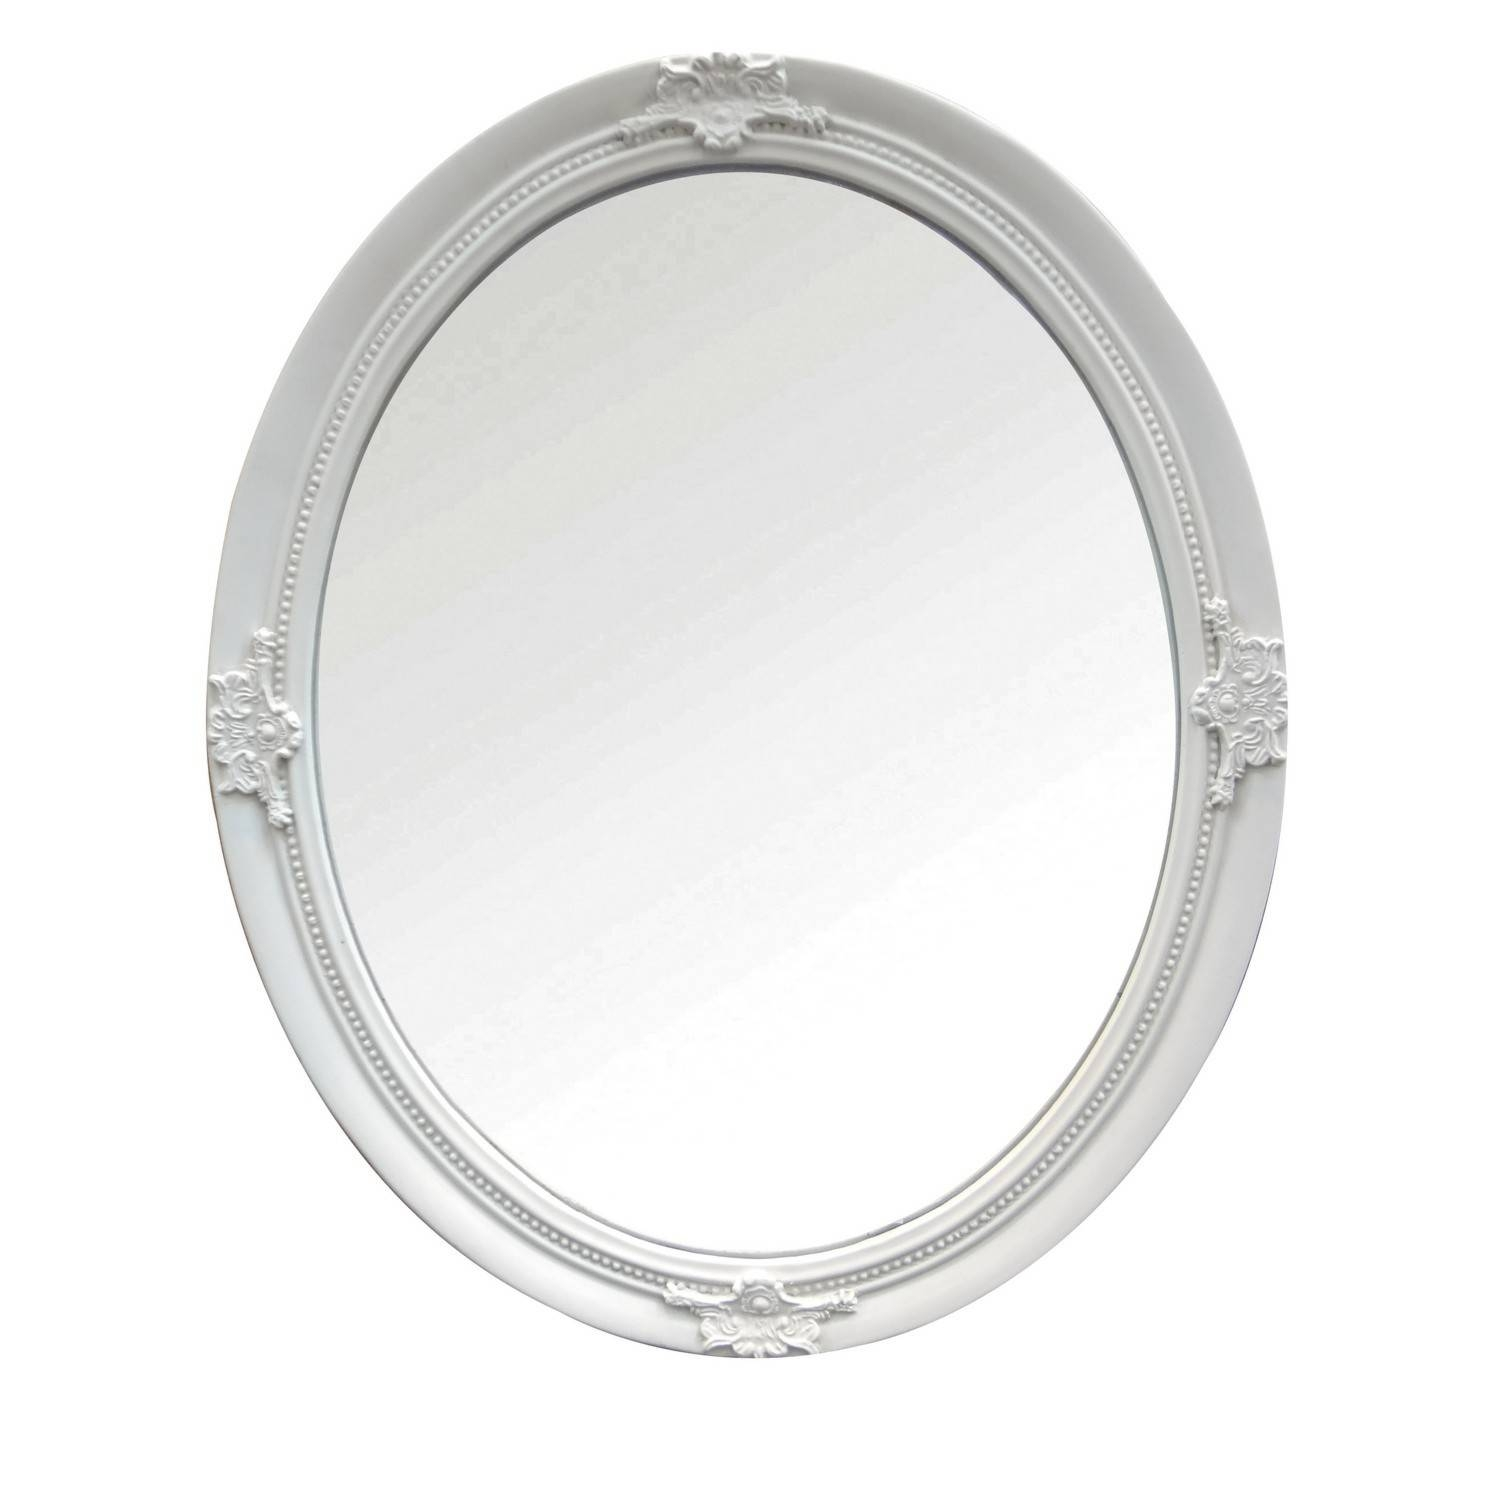 Ornate Ivory Oval Mirror for Ornate Oval Mirrors (Image 15 of 25)